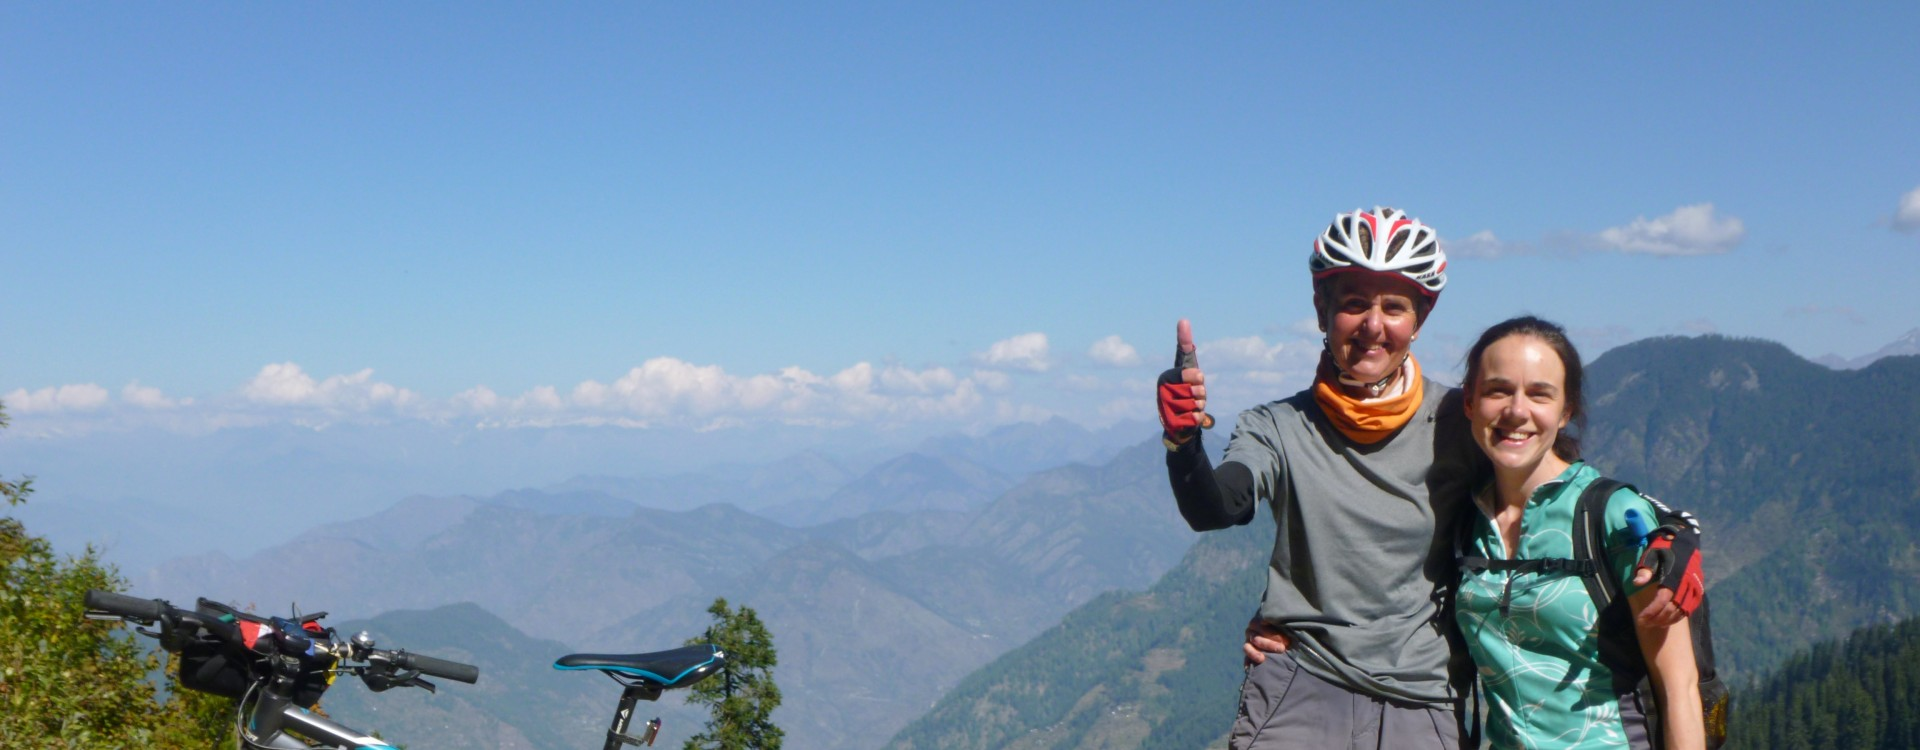 Cycling in the foothills of the Indian Himalaya